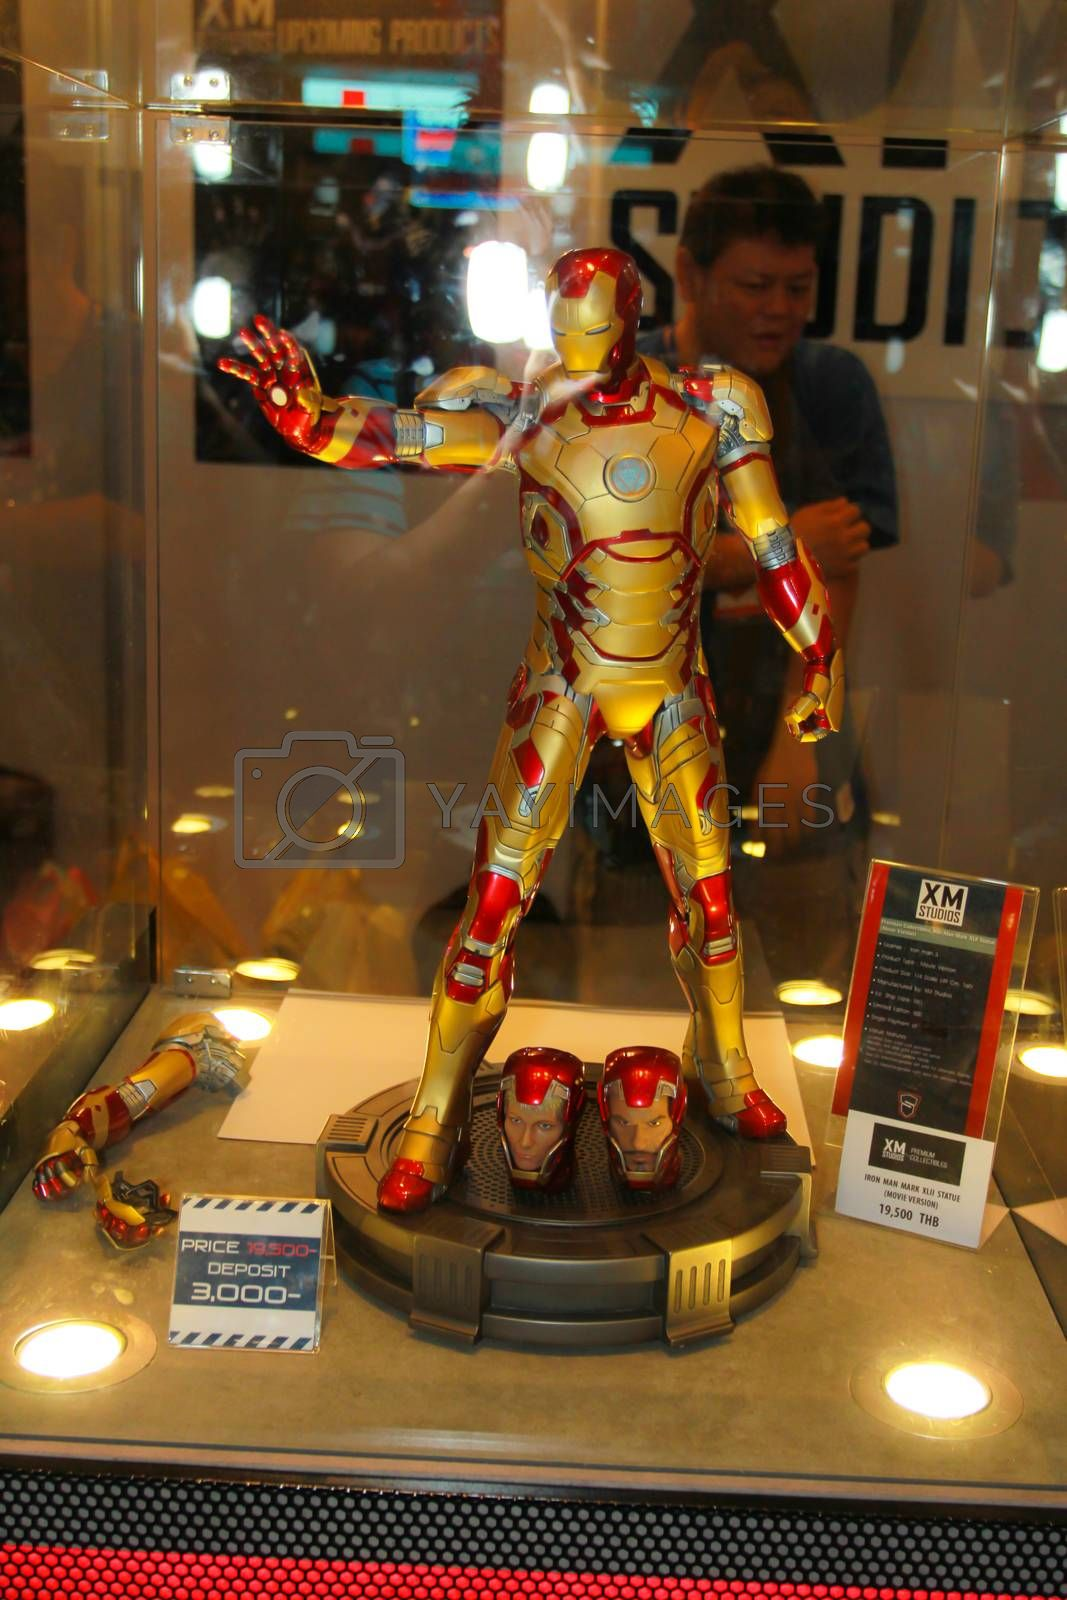 Royalty free image of A model of the character Iron Man from the movies and comics 20 by redthirteen